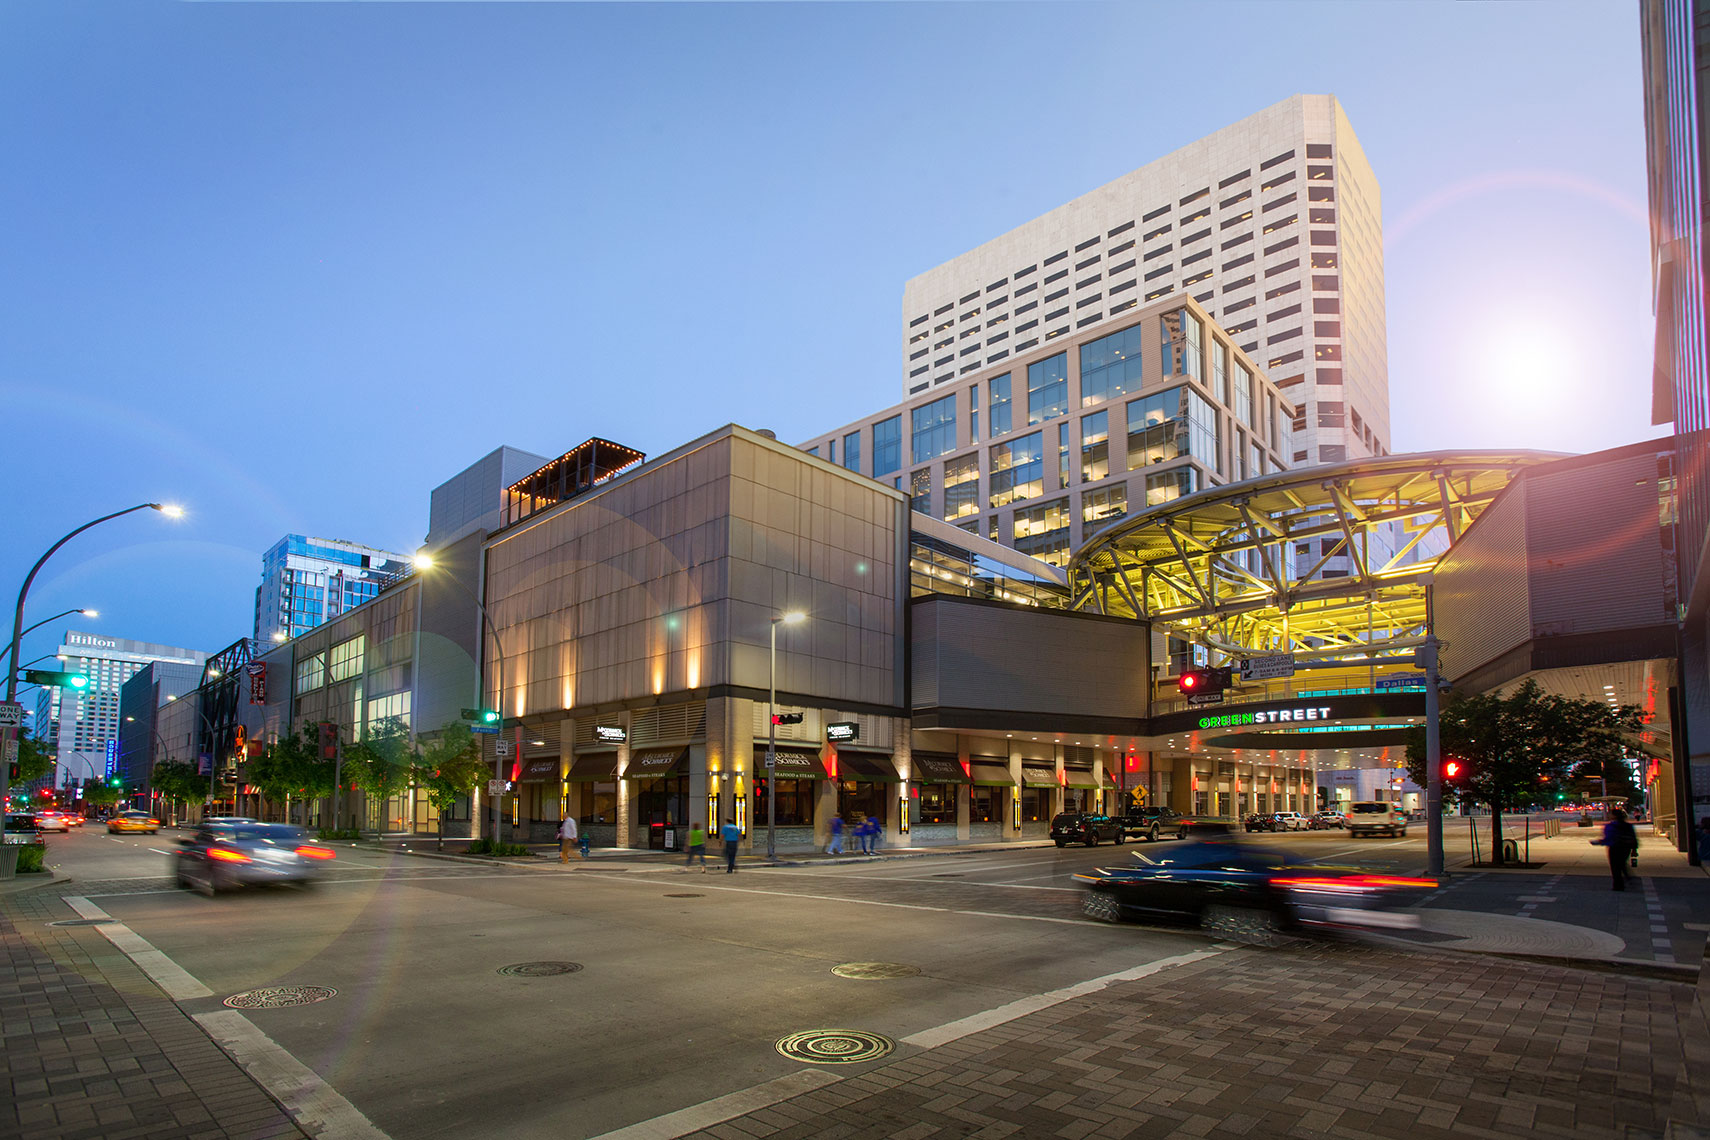 architectural photography of multi use shopping center called GreenStreet in Houston, Texas